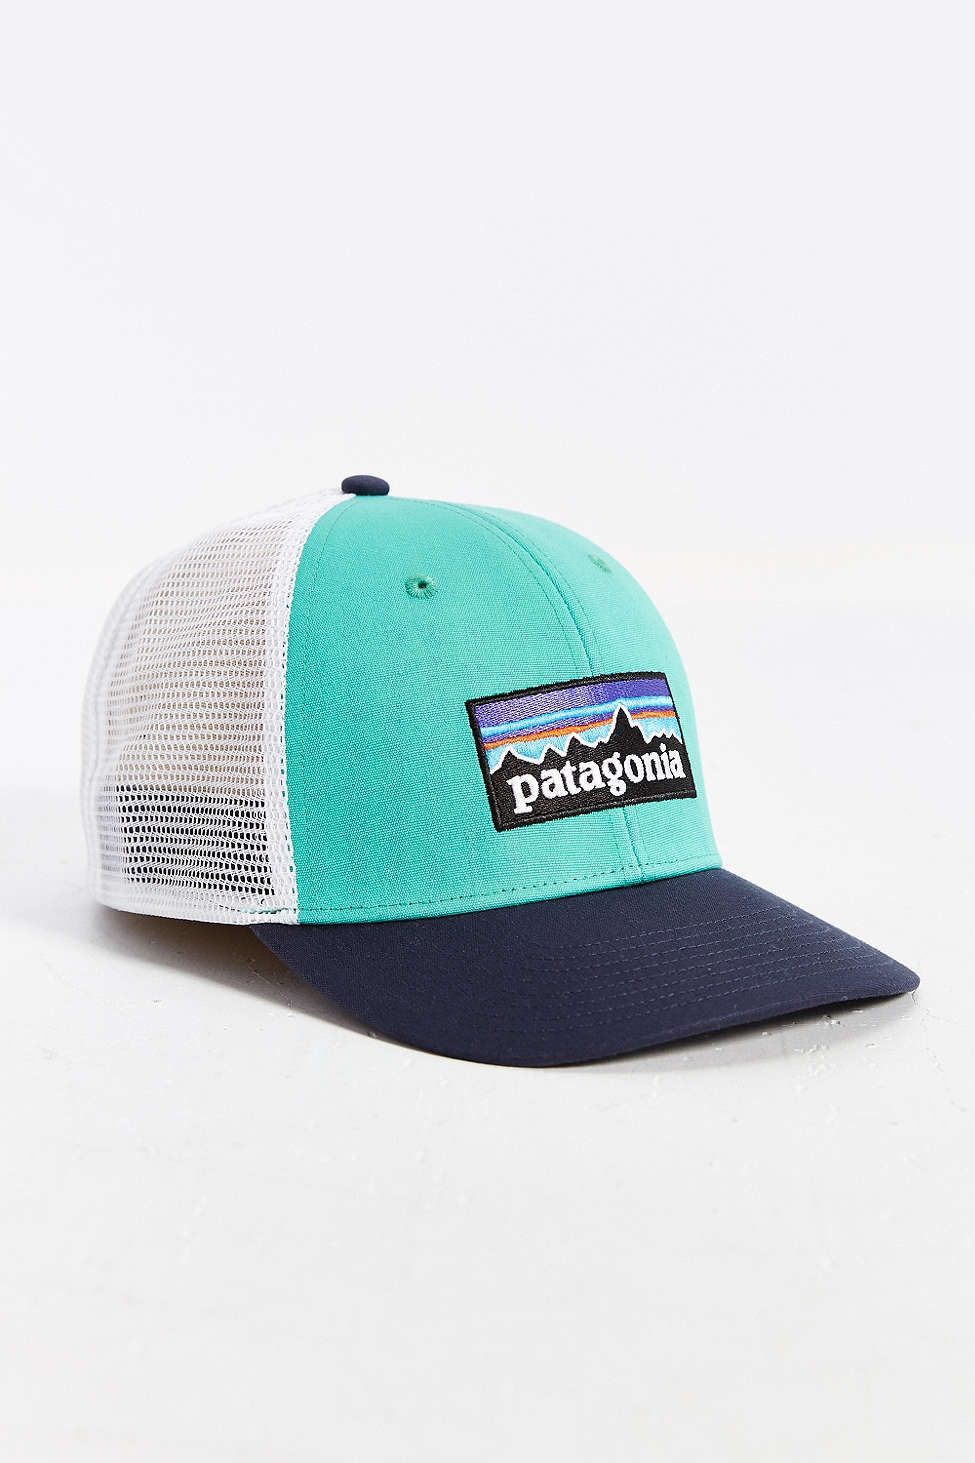 Patagonia Trucker Hat  5353e4394753